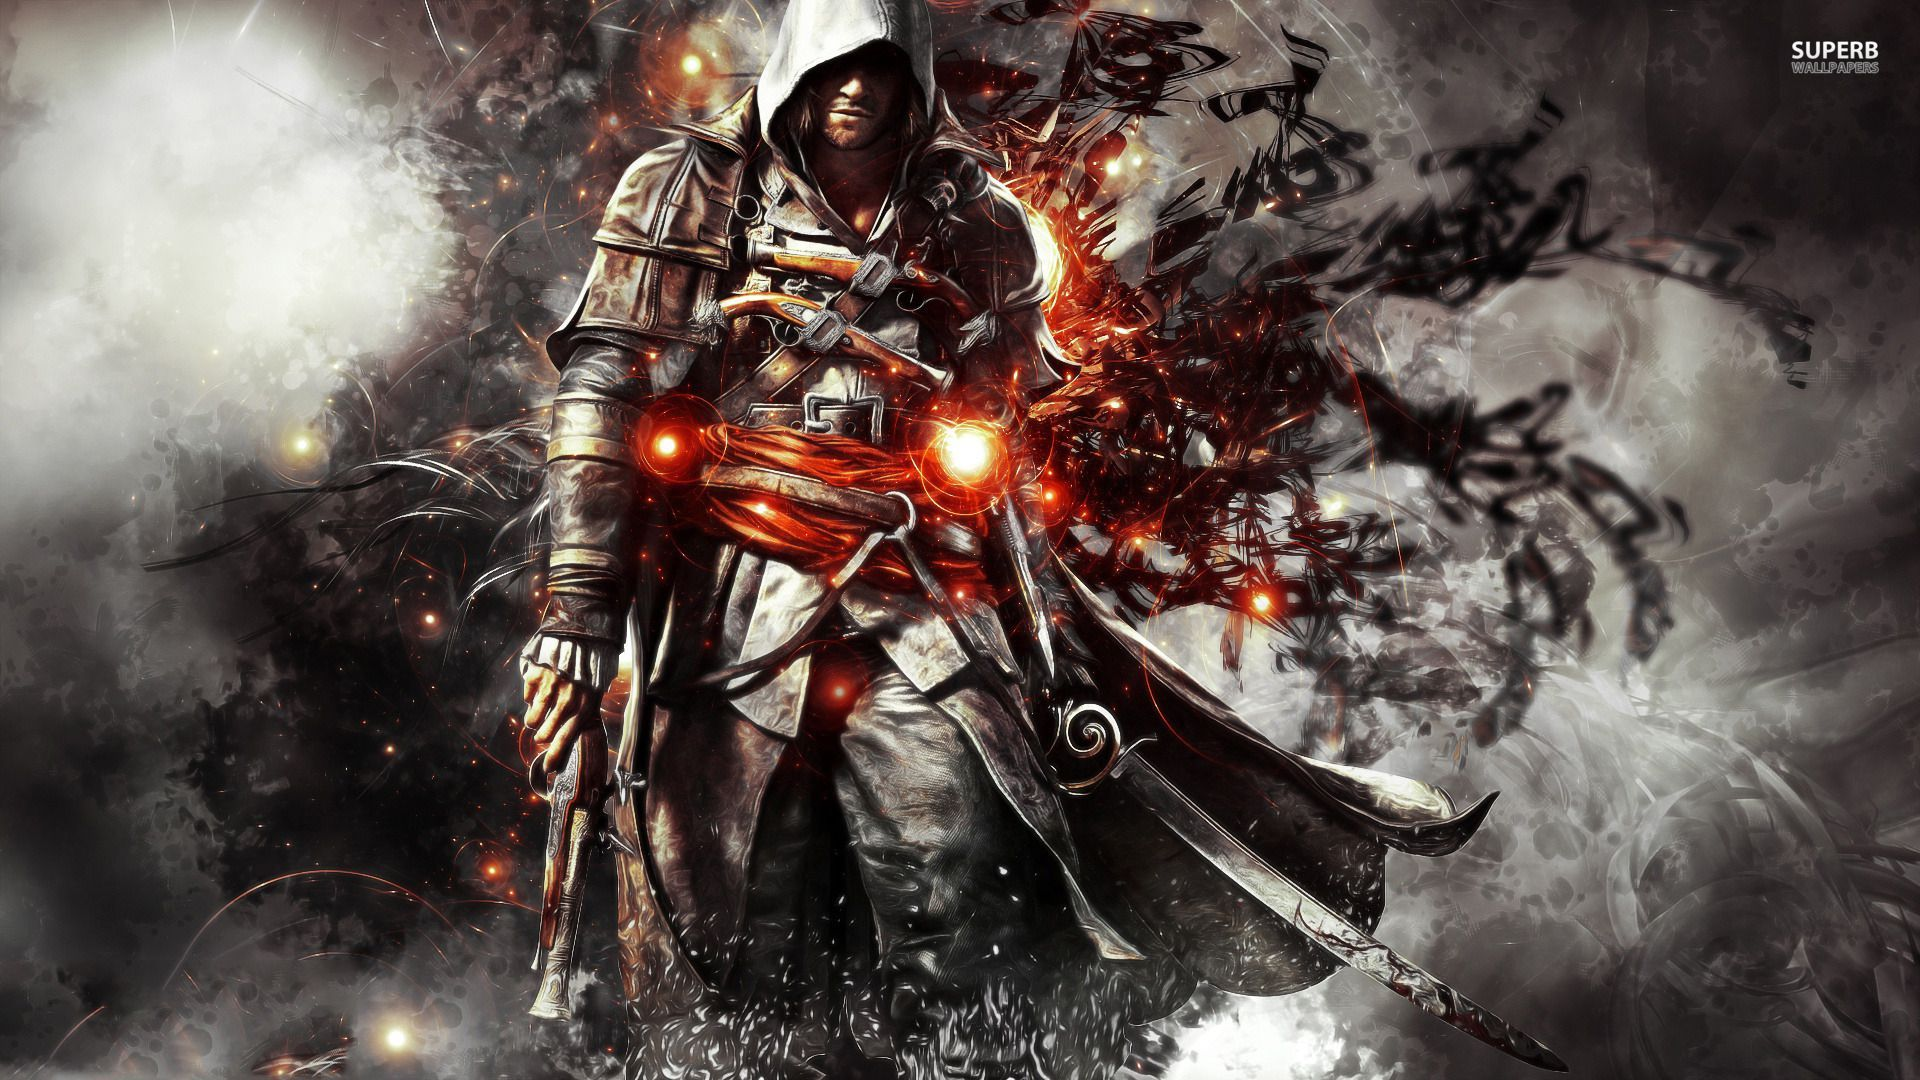 18 Pic Of Assassin Creed 4 In Hd